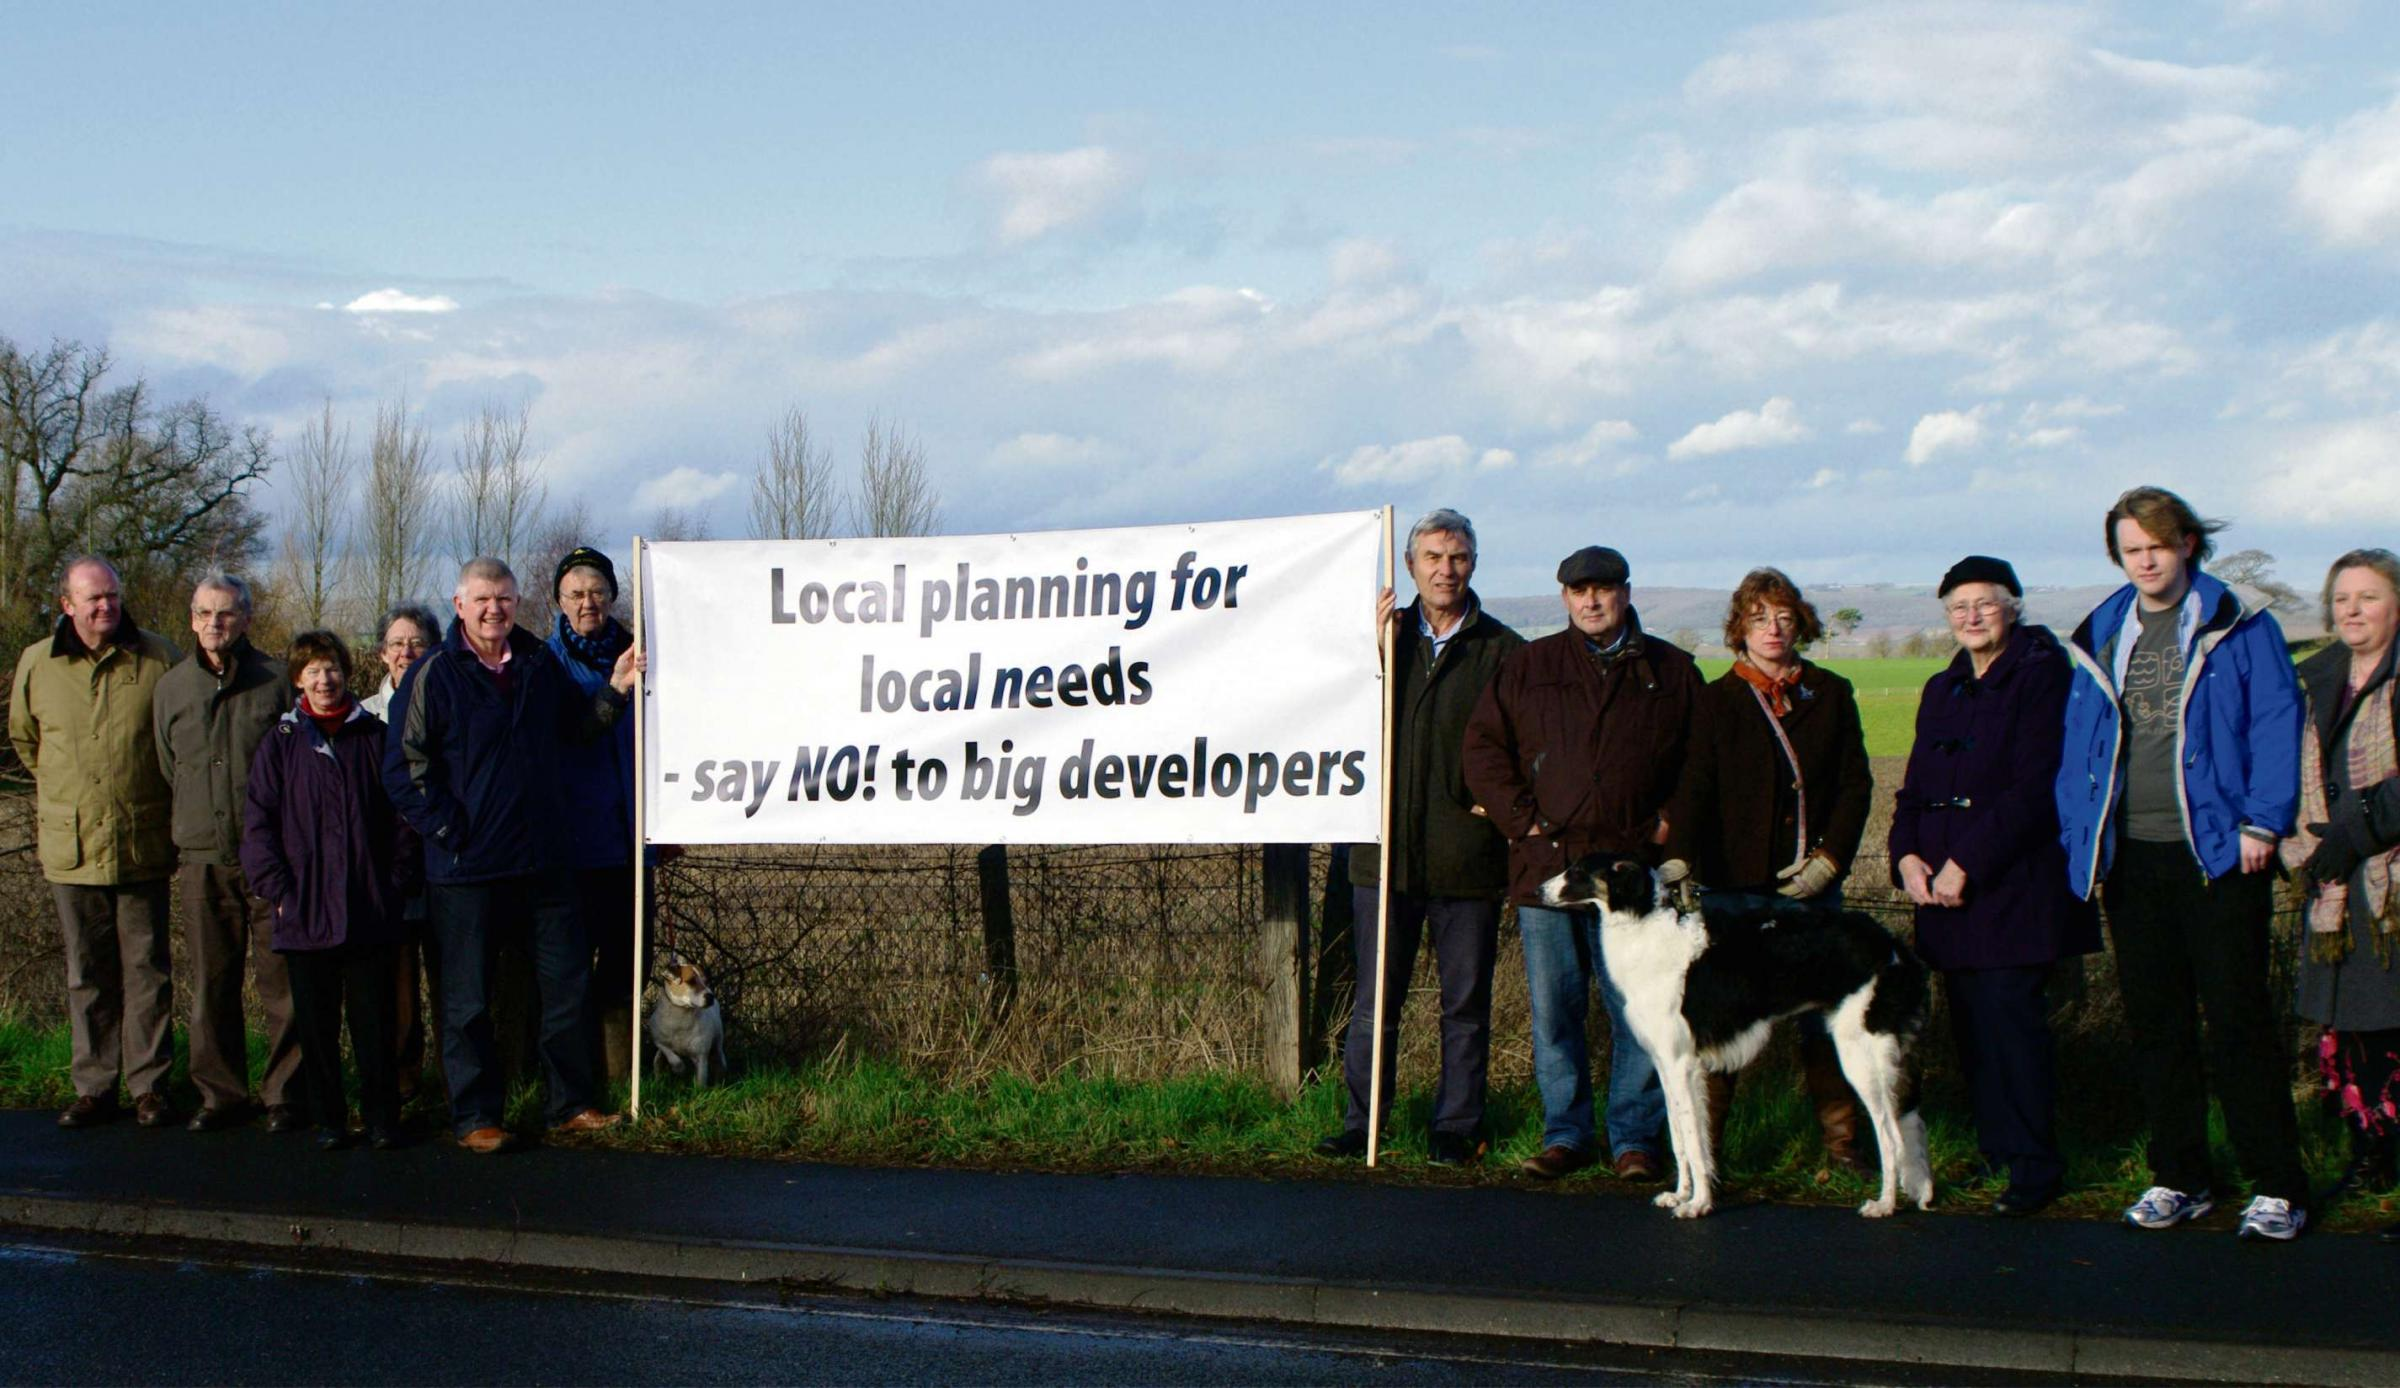 Residents protest against another housing proposal in Bartestree